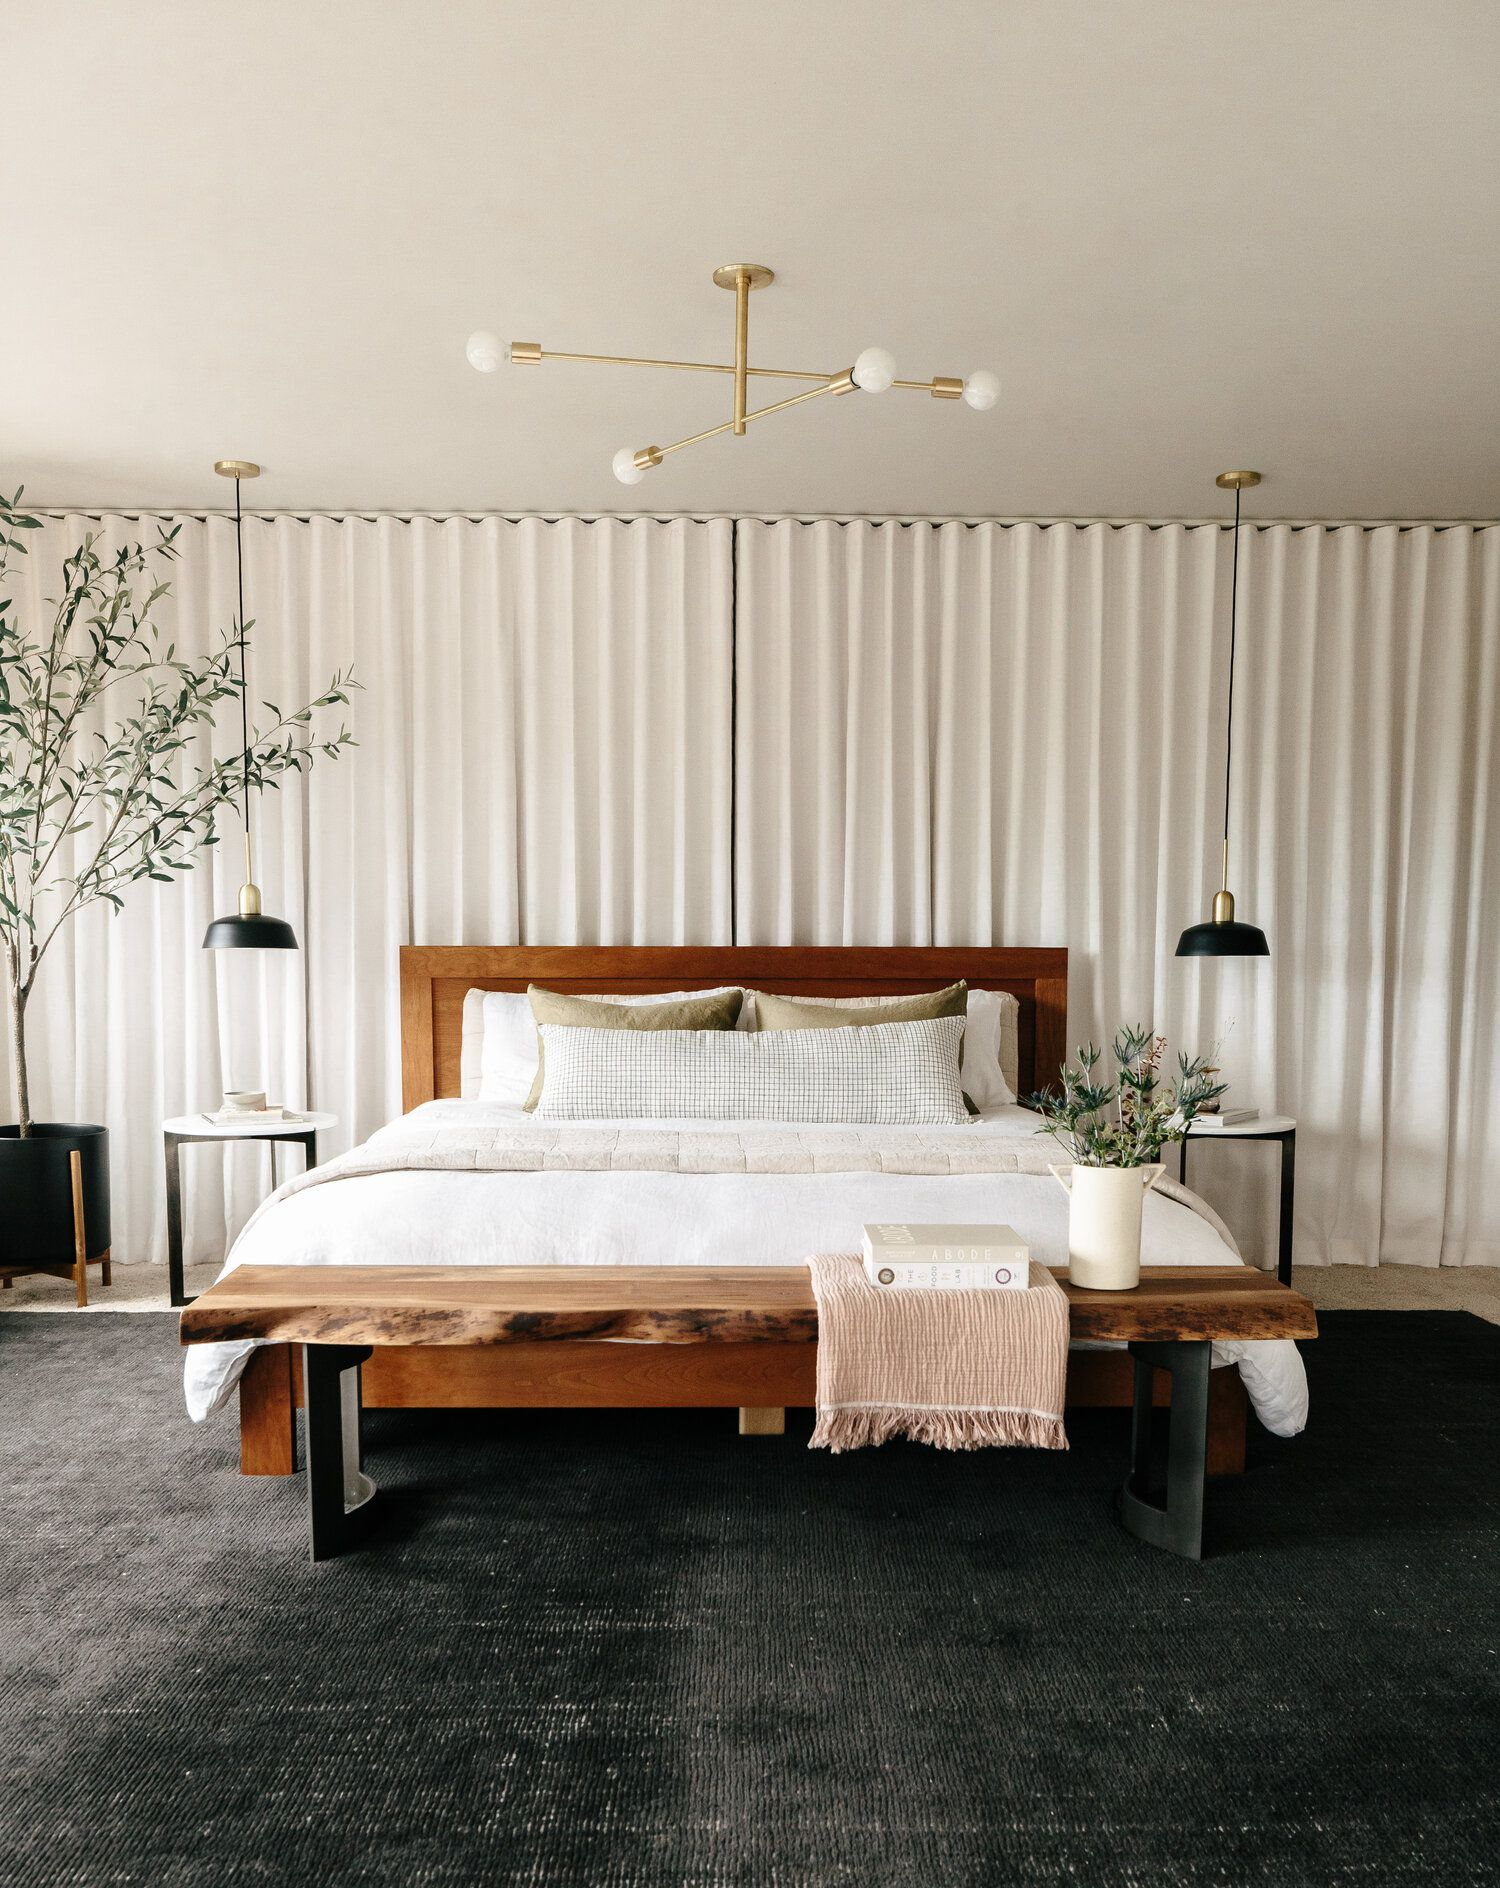 13 Bedroom Decorating Ideas For Couples